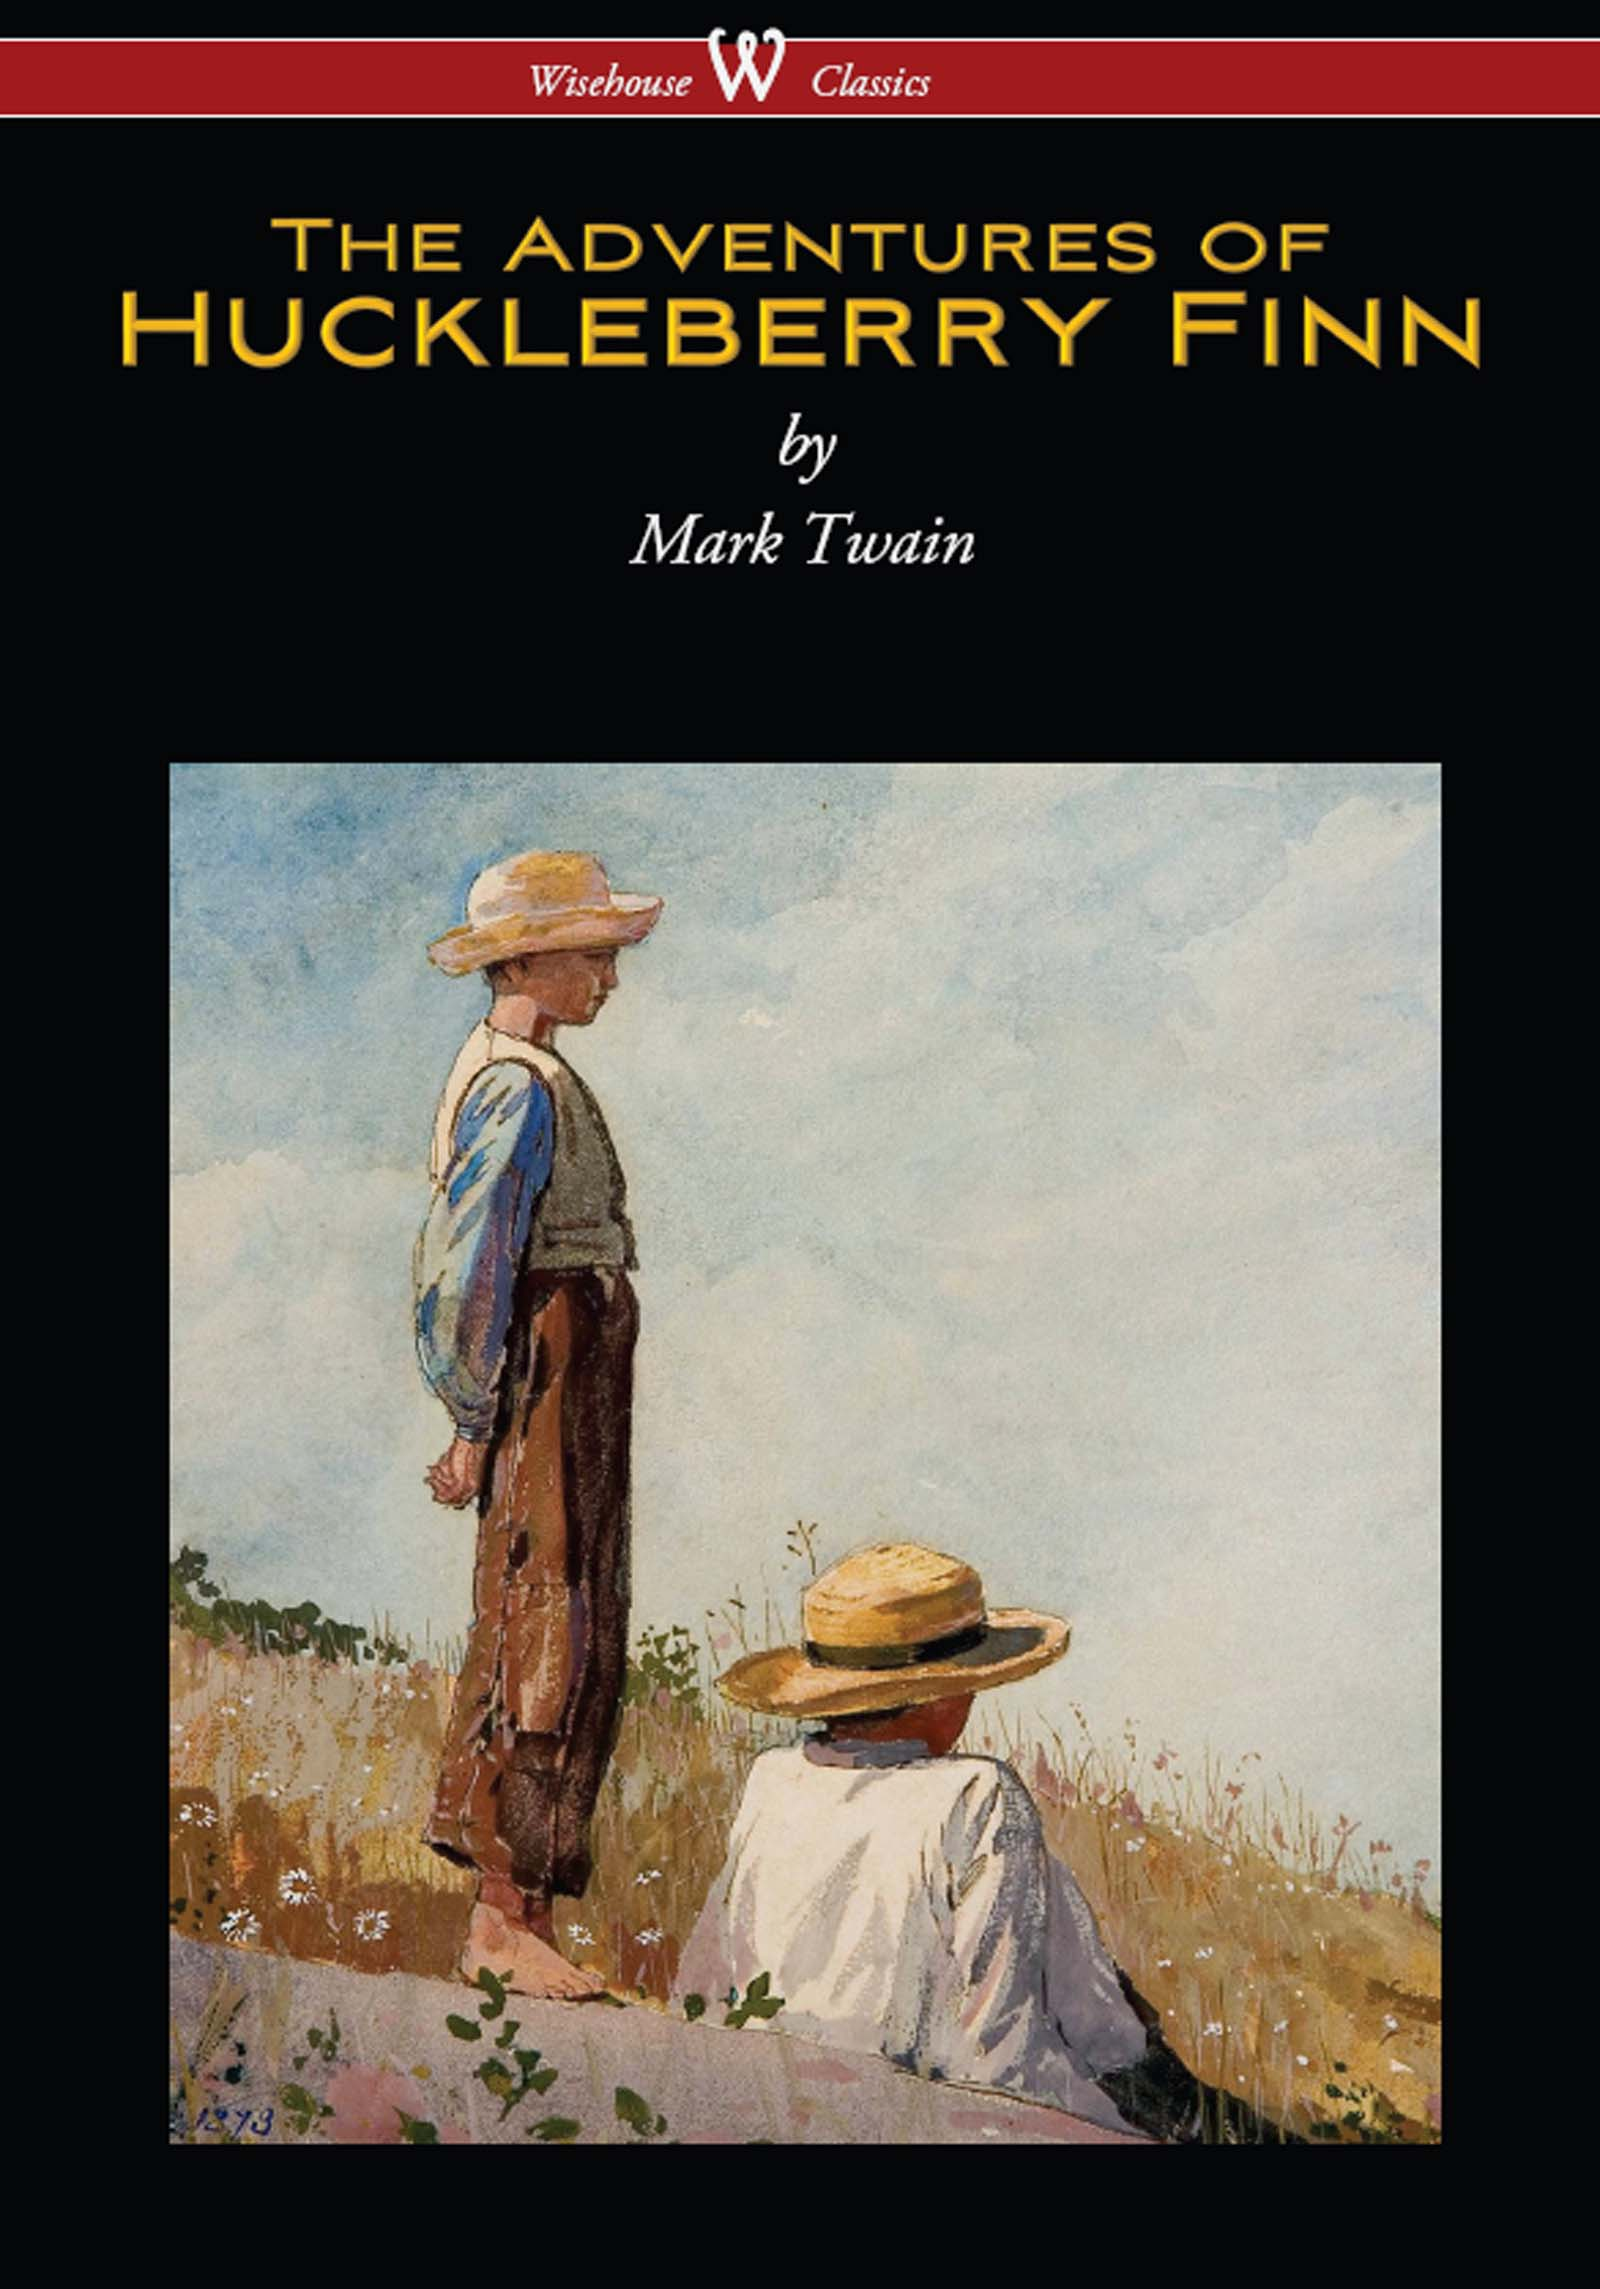 adventures of huck finn essays New topic adventures of huckleberry finn themes new topic the adventures of huckleberry finn chapter 8 summary new topic the adventures of huckleberry finn important quotes huckleberry finn.